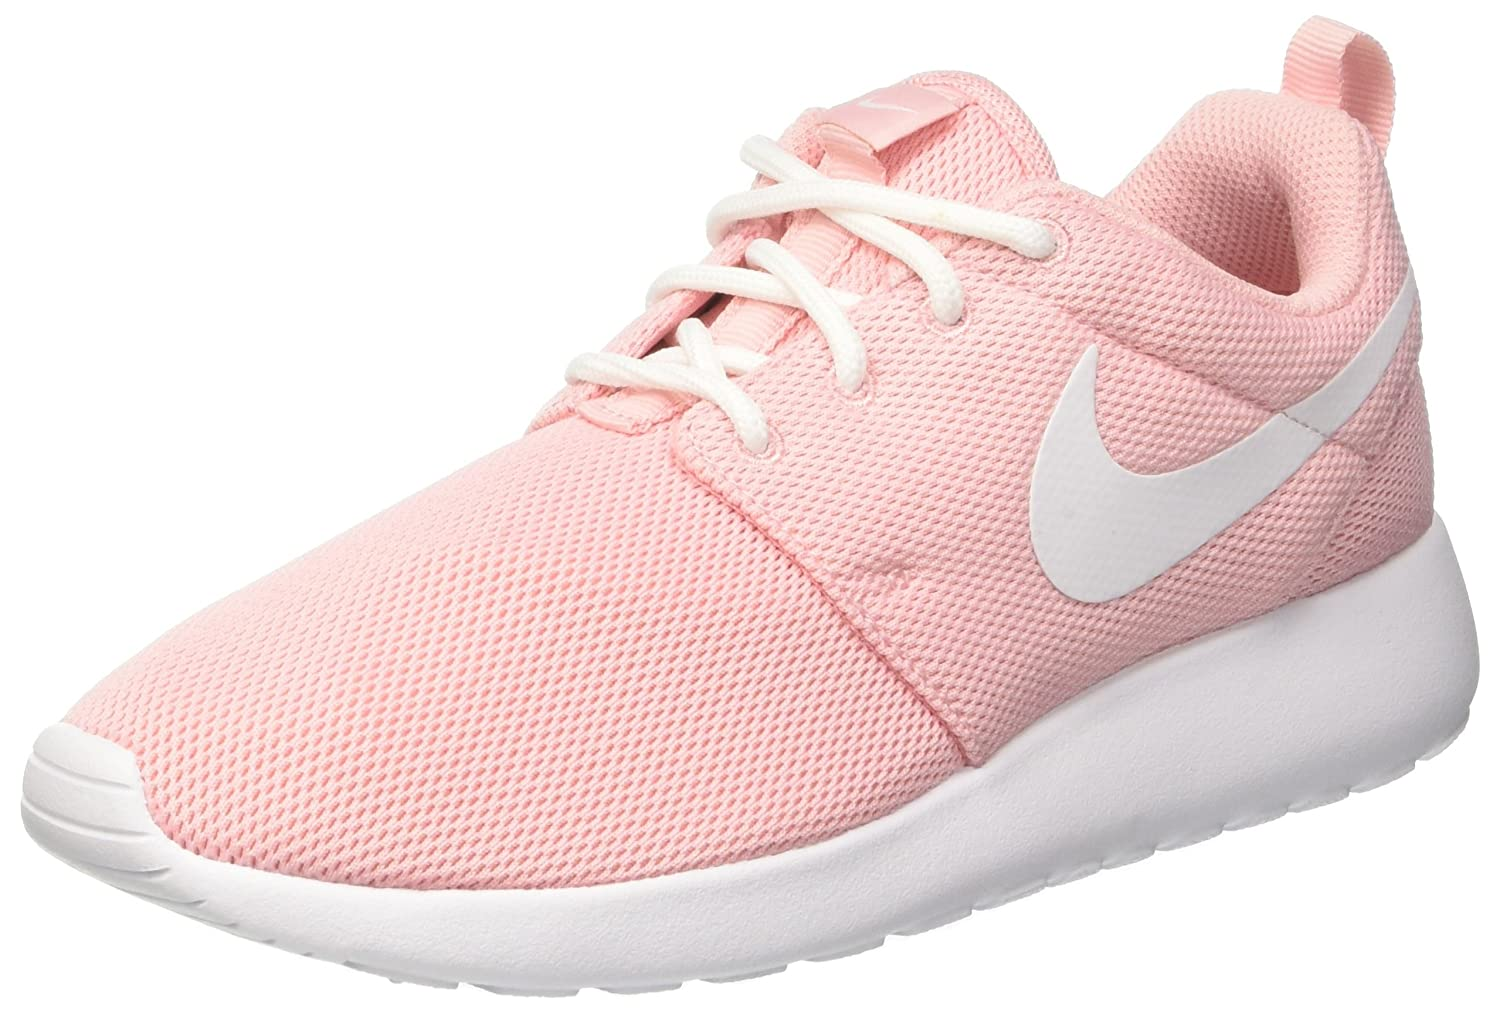 check out e71ed 898f9 Amazon.com: Nike Wmns Roshe One - 511882610 - Color Pink ...